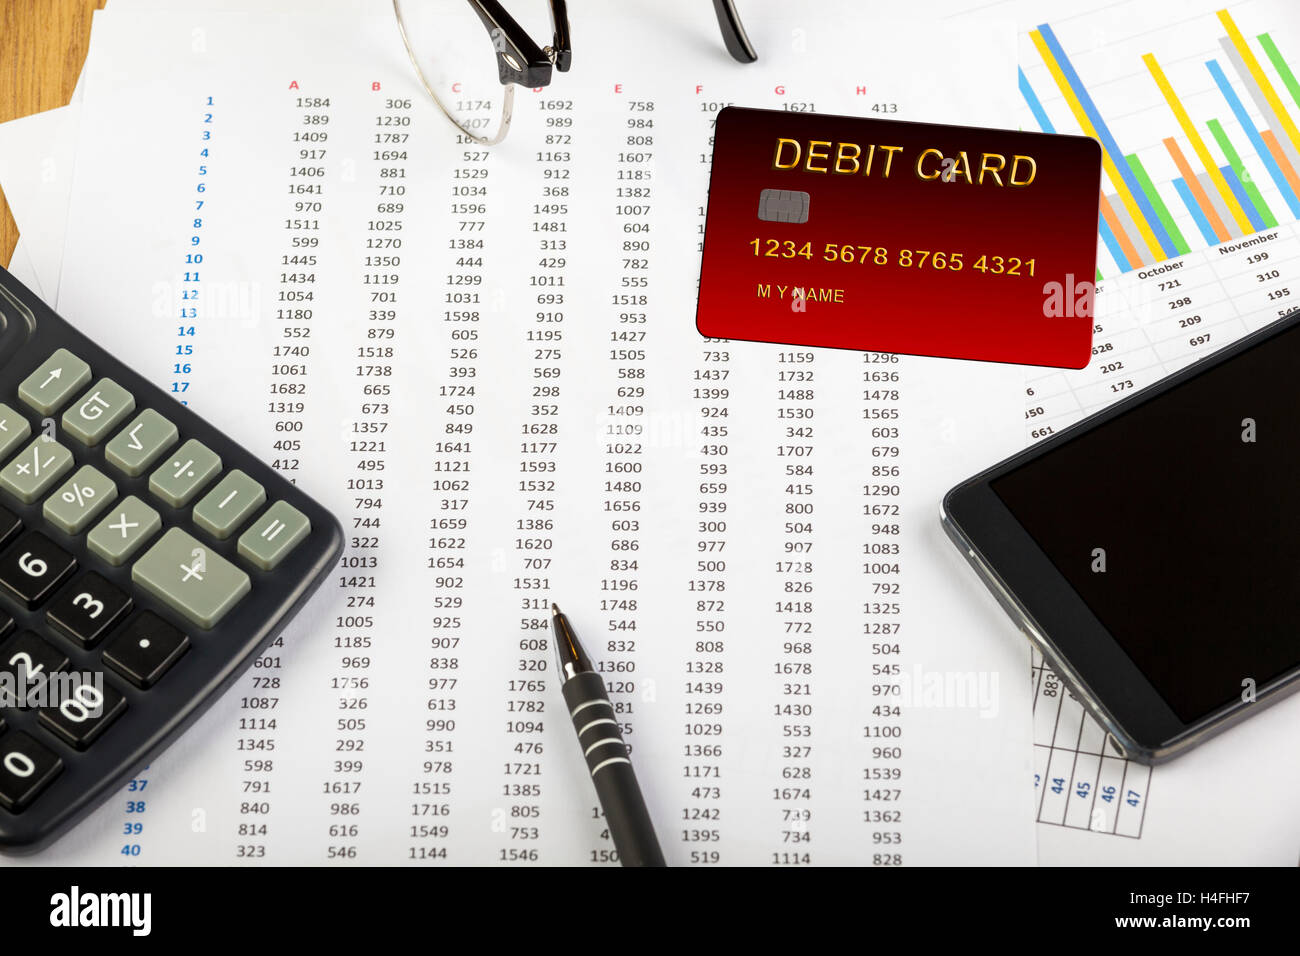 Debit card laying on a spread sheet with a calculator and a smart phone - Stock Image